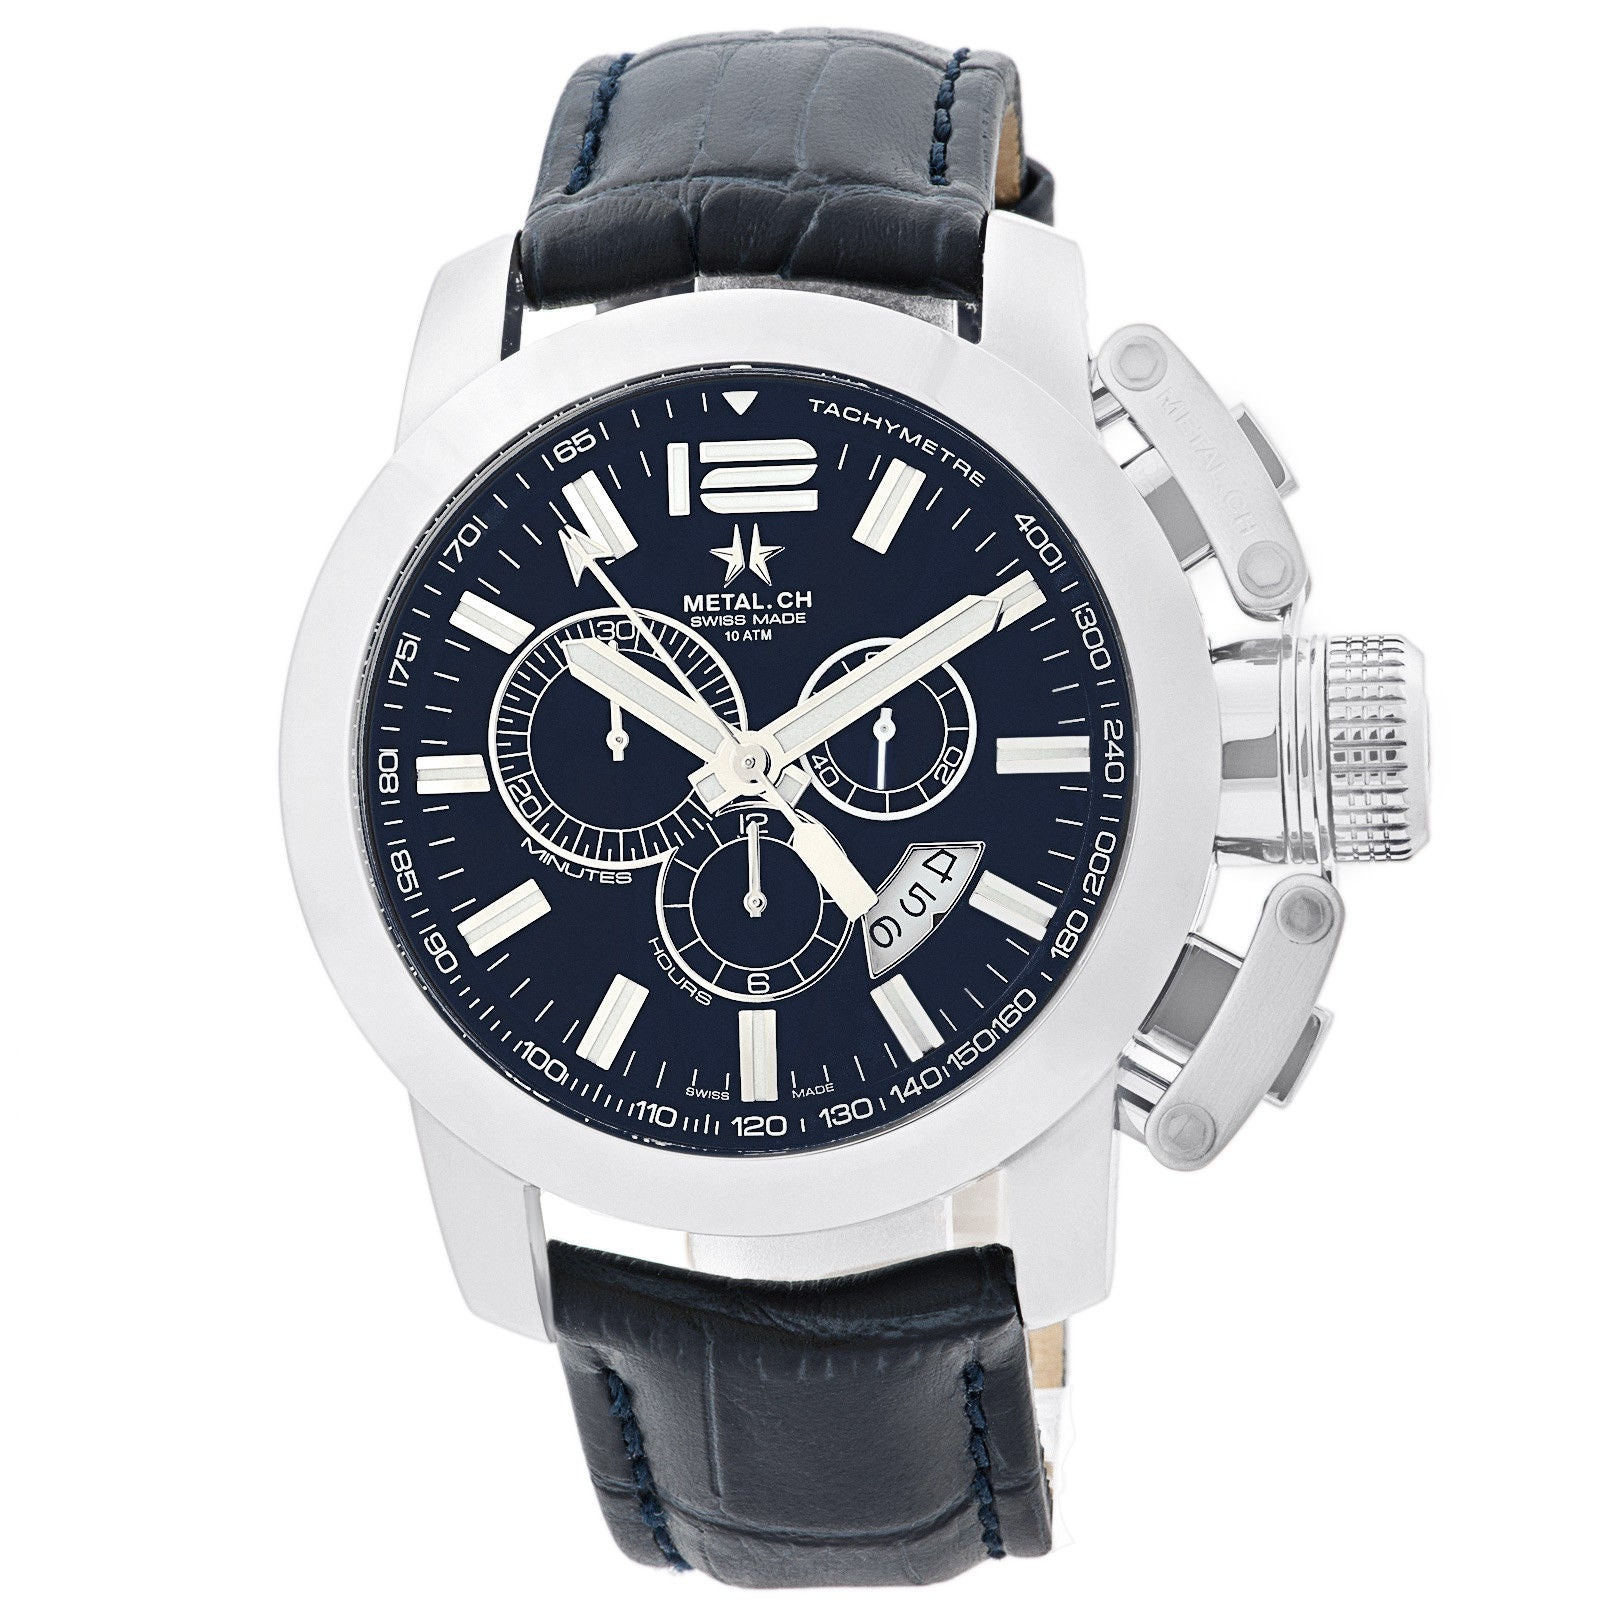 Chronometrie Chrono Series Mens Chronograph Swiss Made Watch 2153.47-Luxury Watches | Mens And Ladies Luxury Watches | Upscale Time